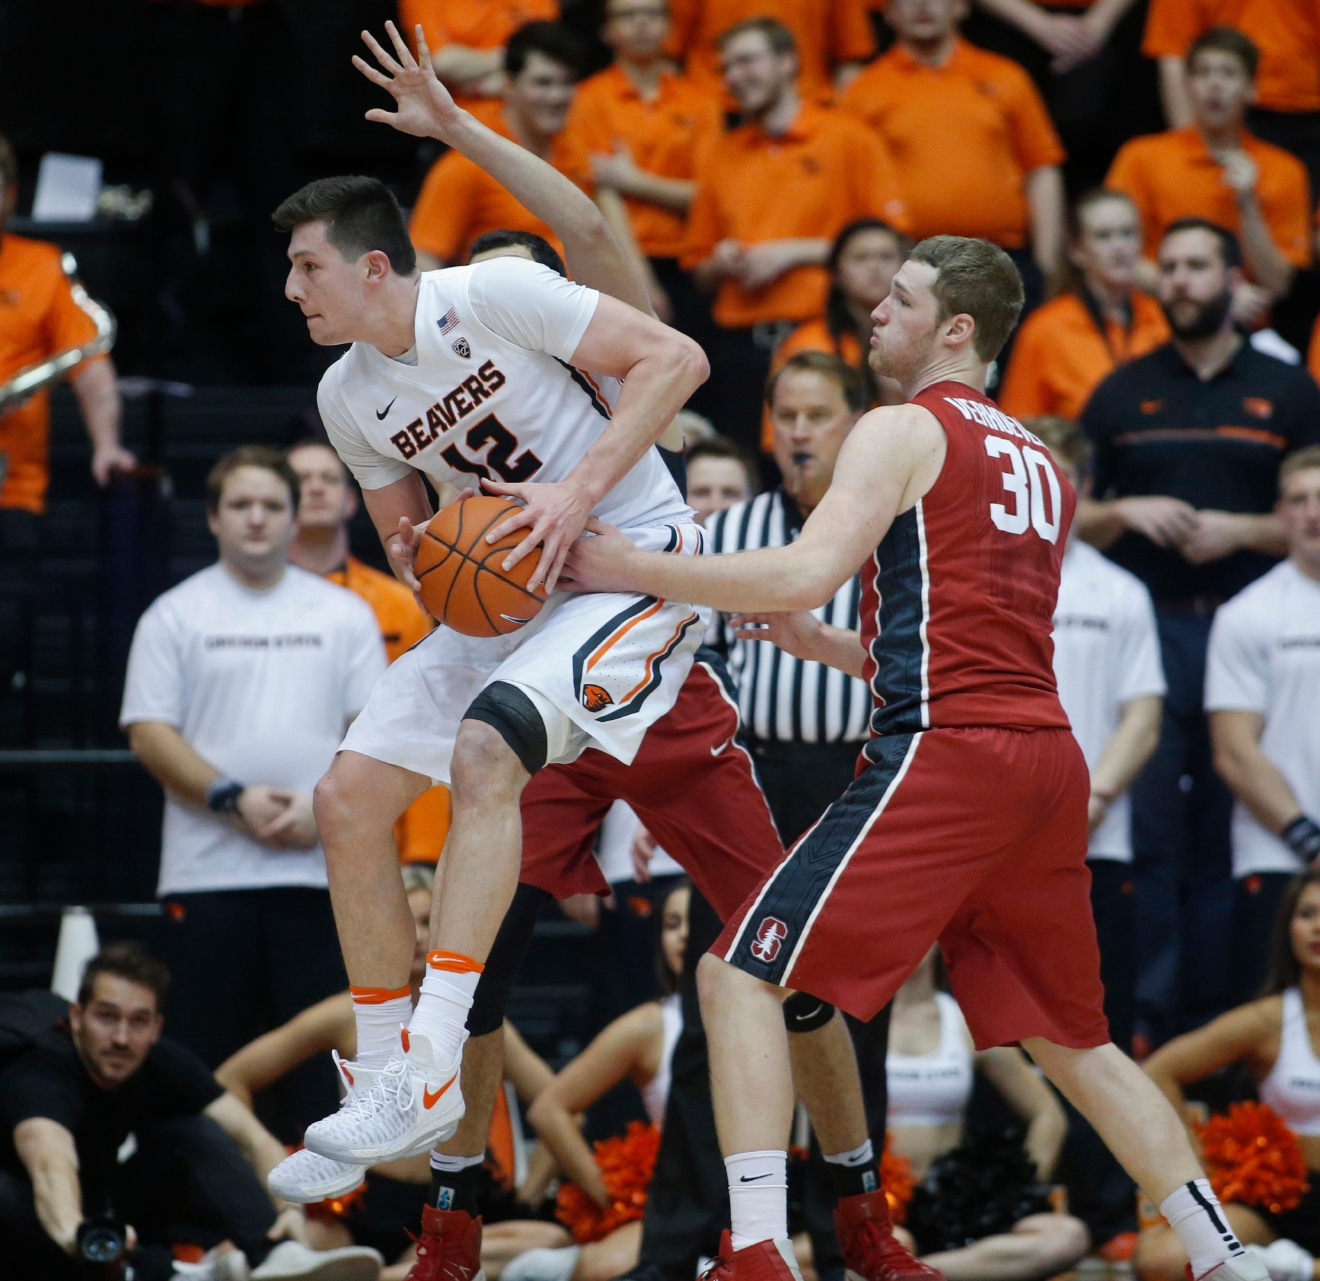 Oregon State's Drew Eubanks (12) jumps past Stanford's Grant Verhoeven (30) during the first half of an NCAA college basketball game in Corvallis, Ore., Thursday, Jan. 19, 2017. (AP Photo/Timothy J. Gonzalez)